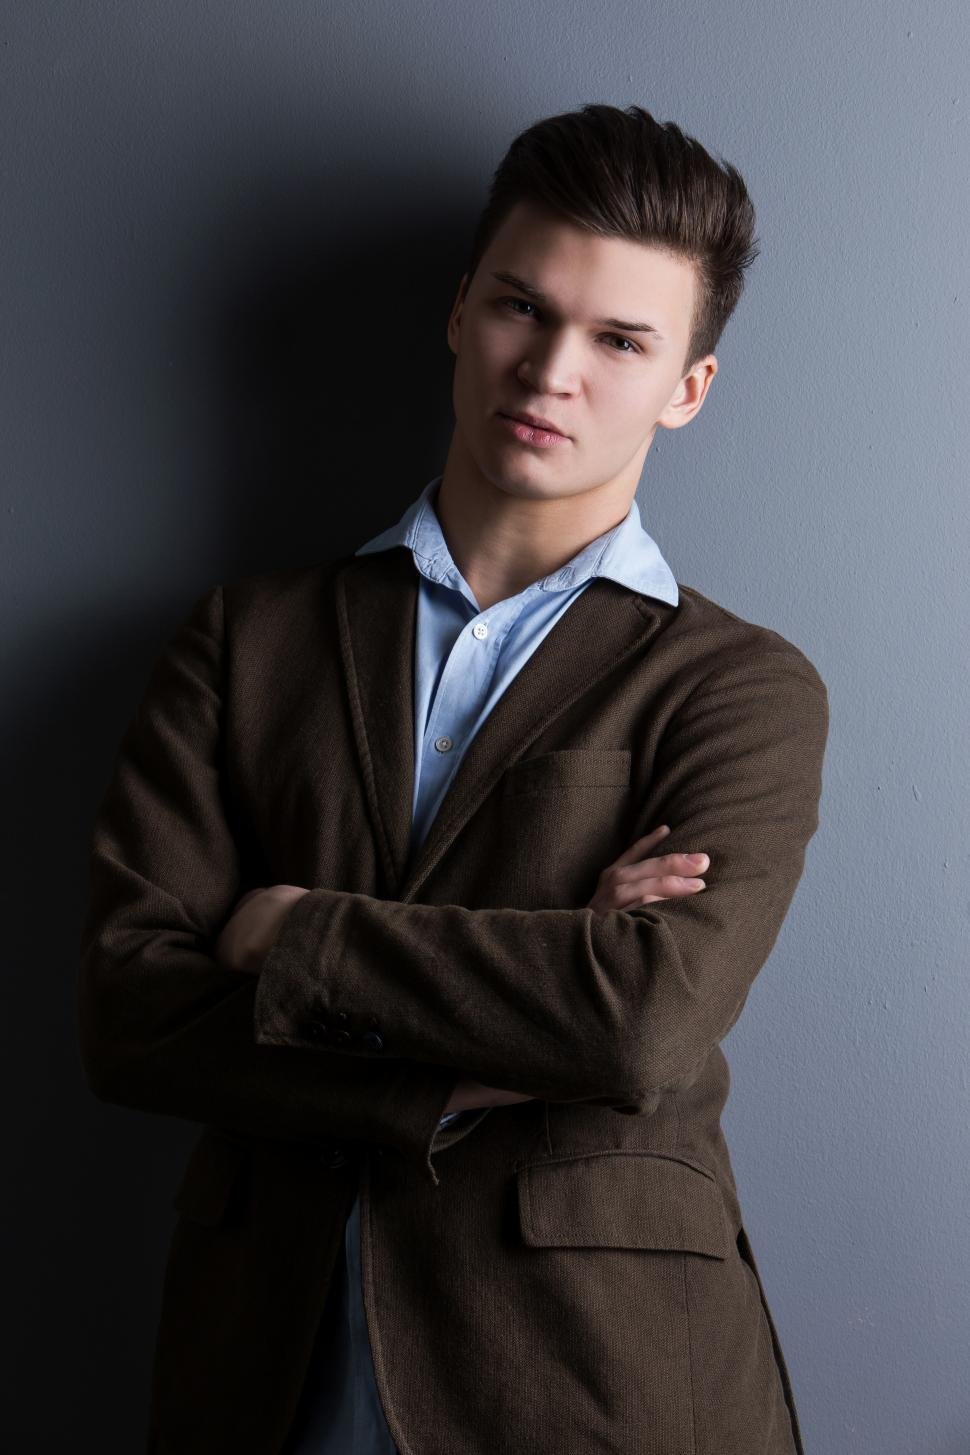 Download Free Stock Photo of Well-dressed man with arms crossed, leaning on wall